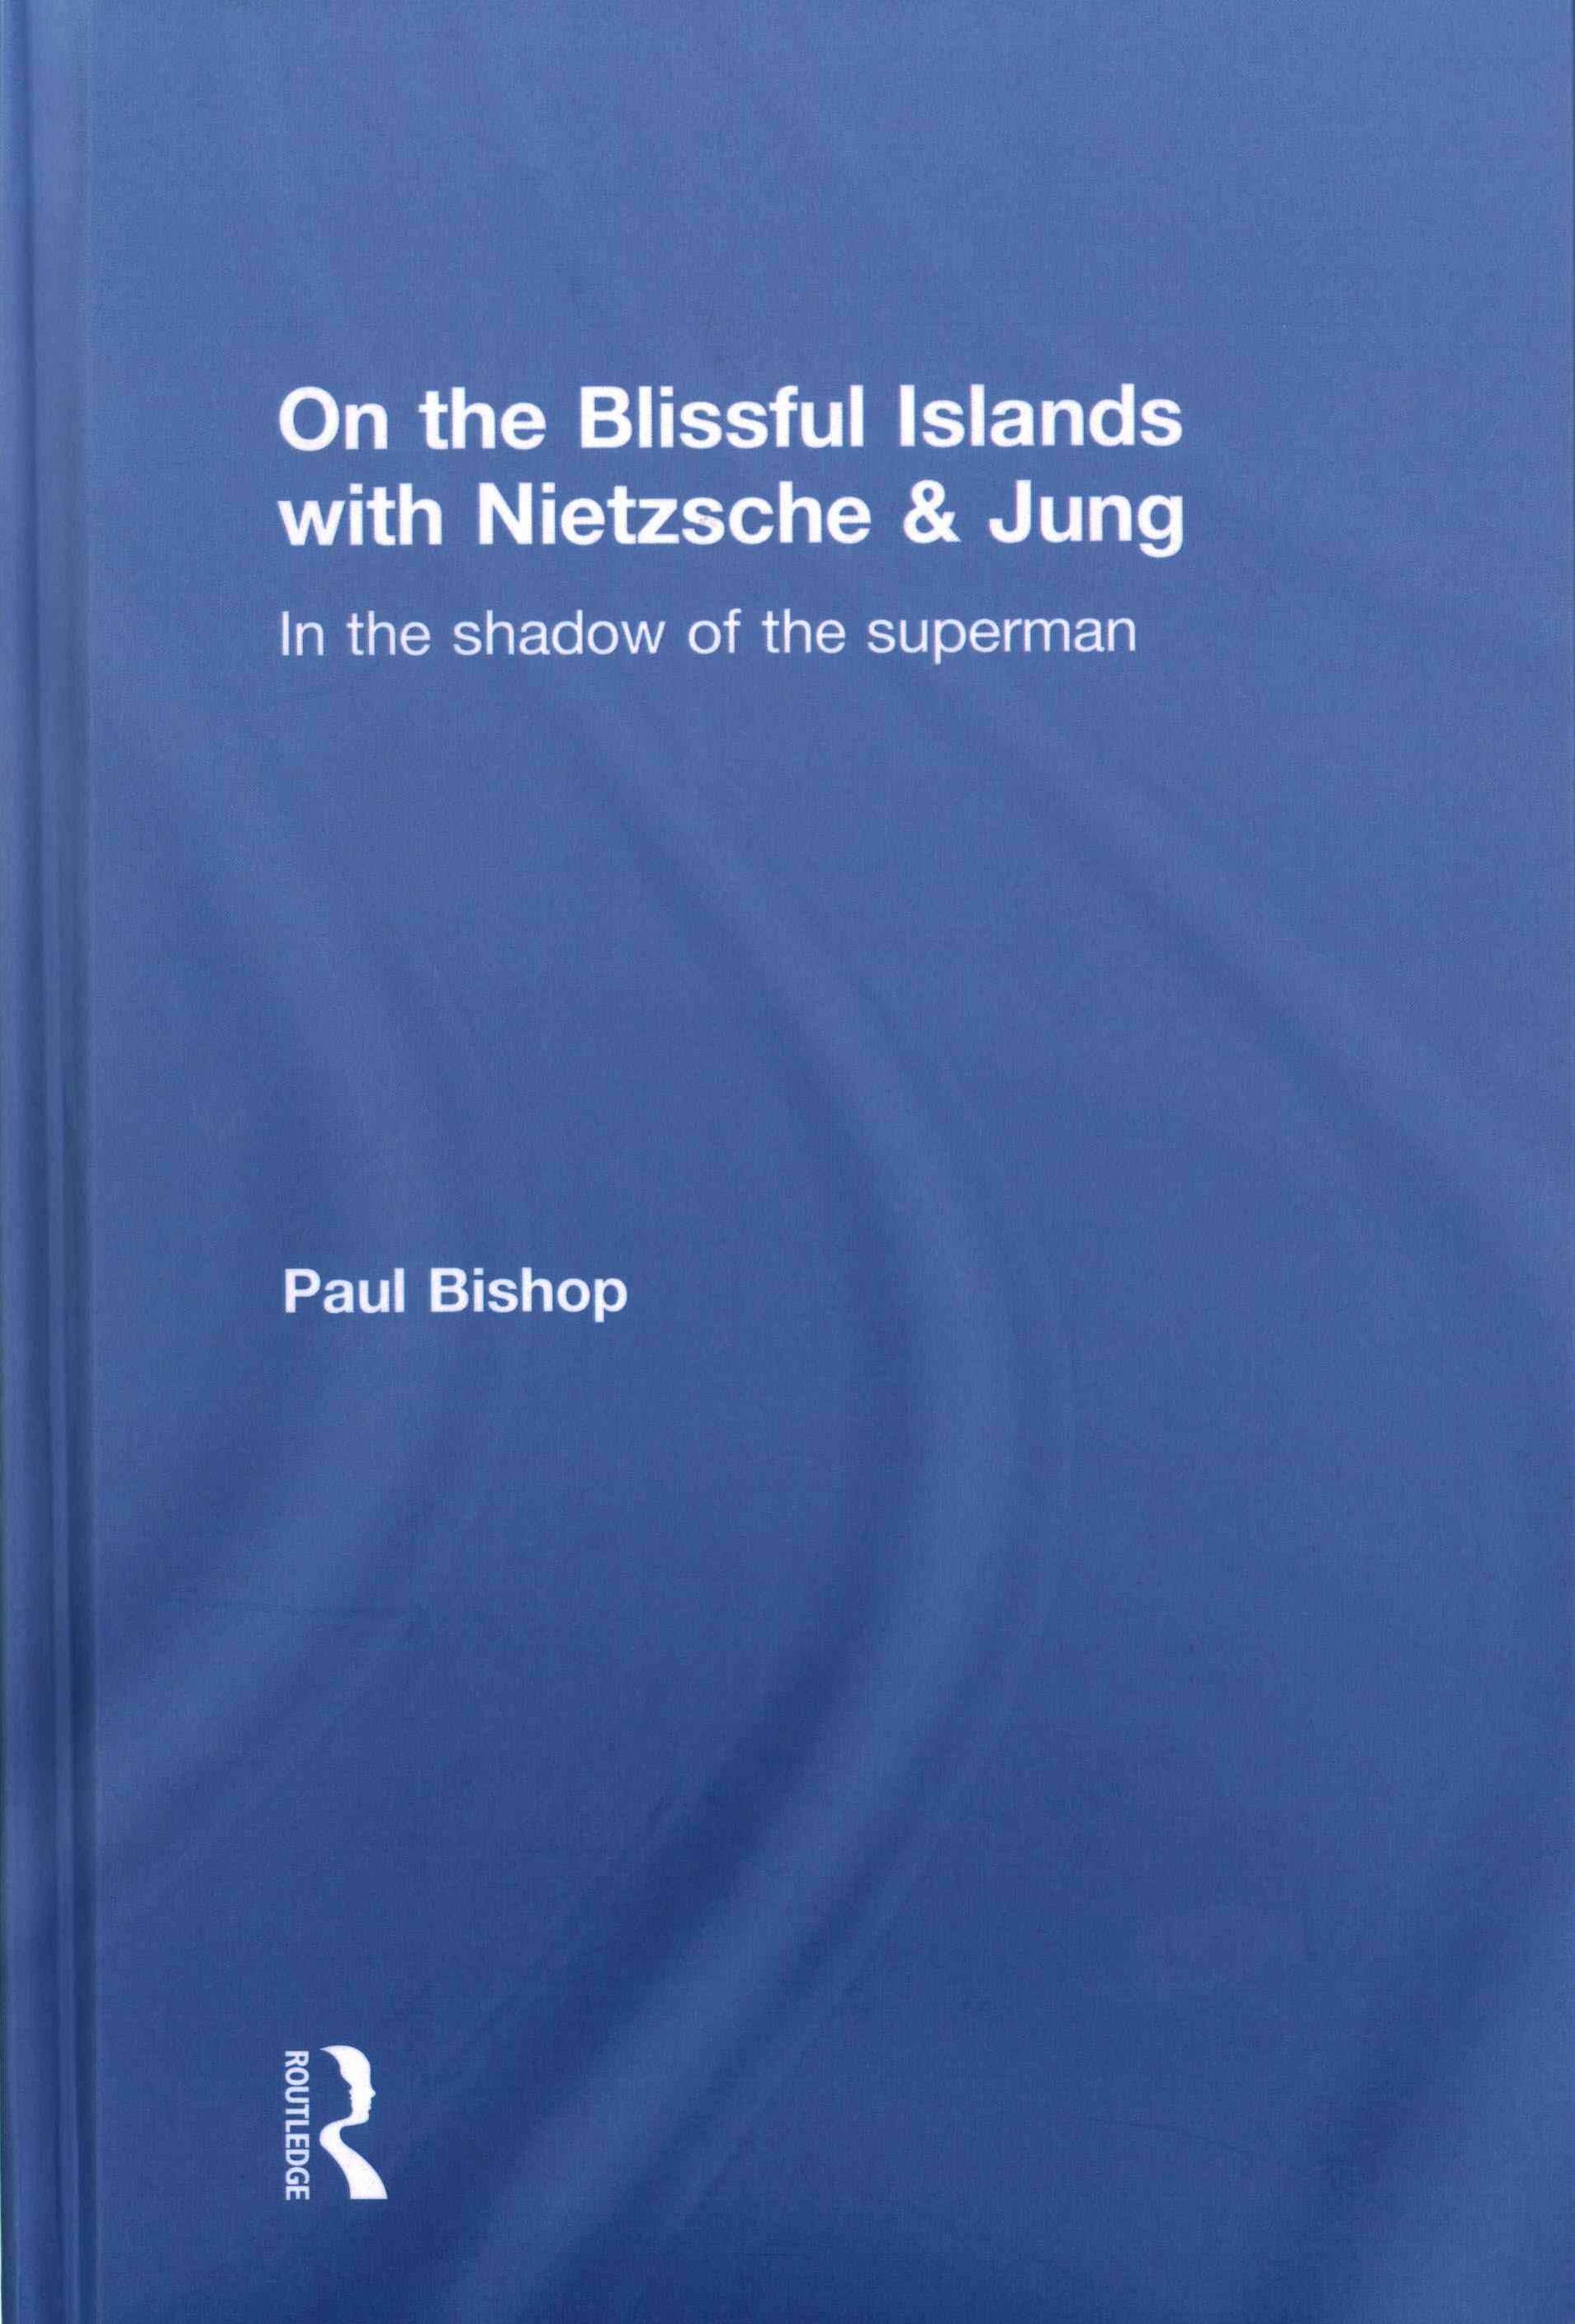 On the Blissful Islands with Nietzsche and Jung